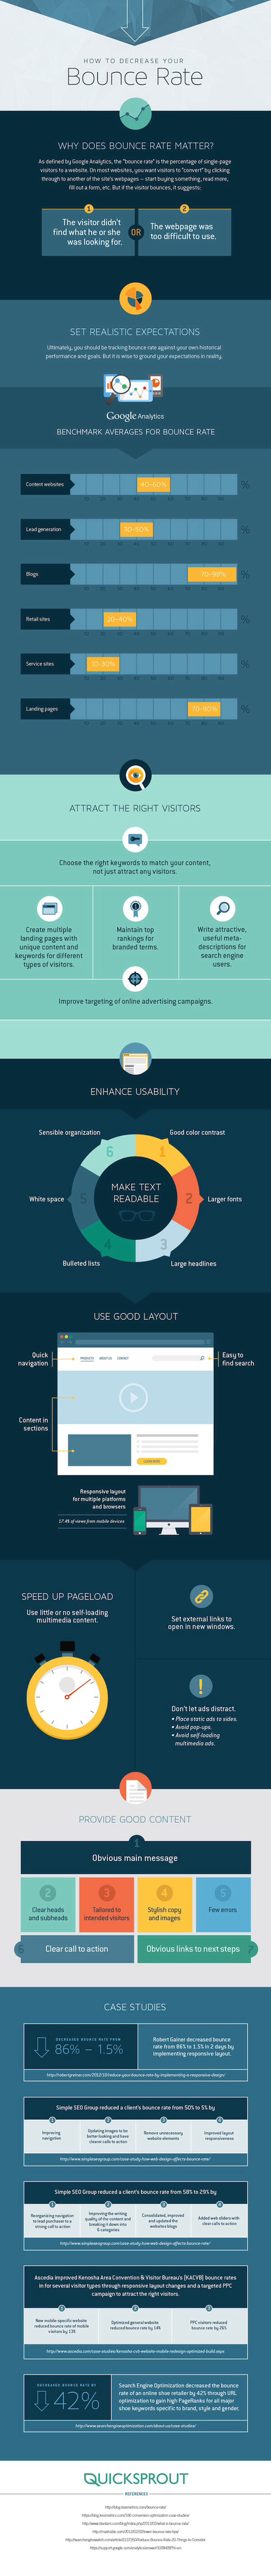 How to Decrease Your Website's Bounce Rate [Infographic] | Beyond Marketing | Scoop.it